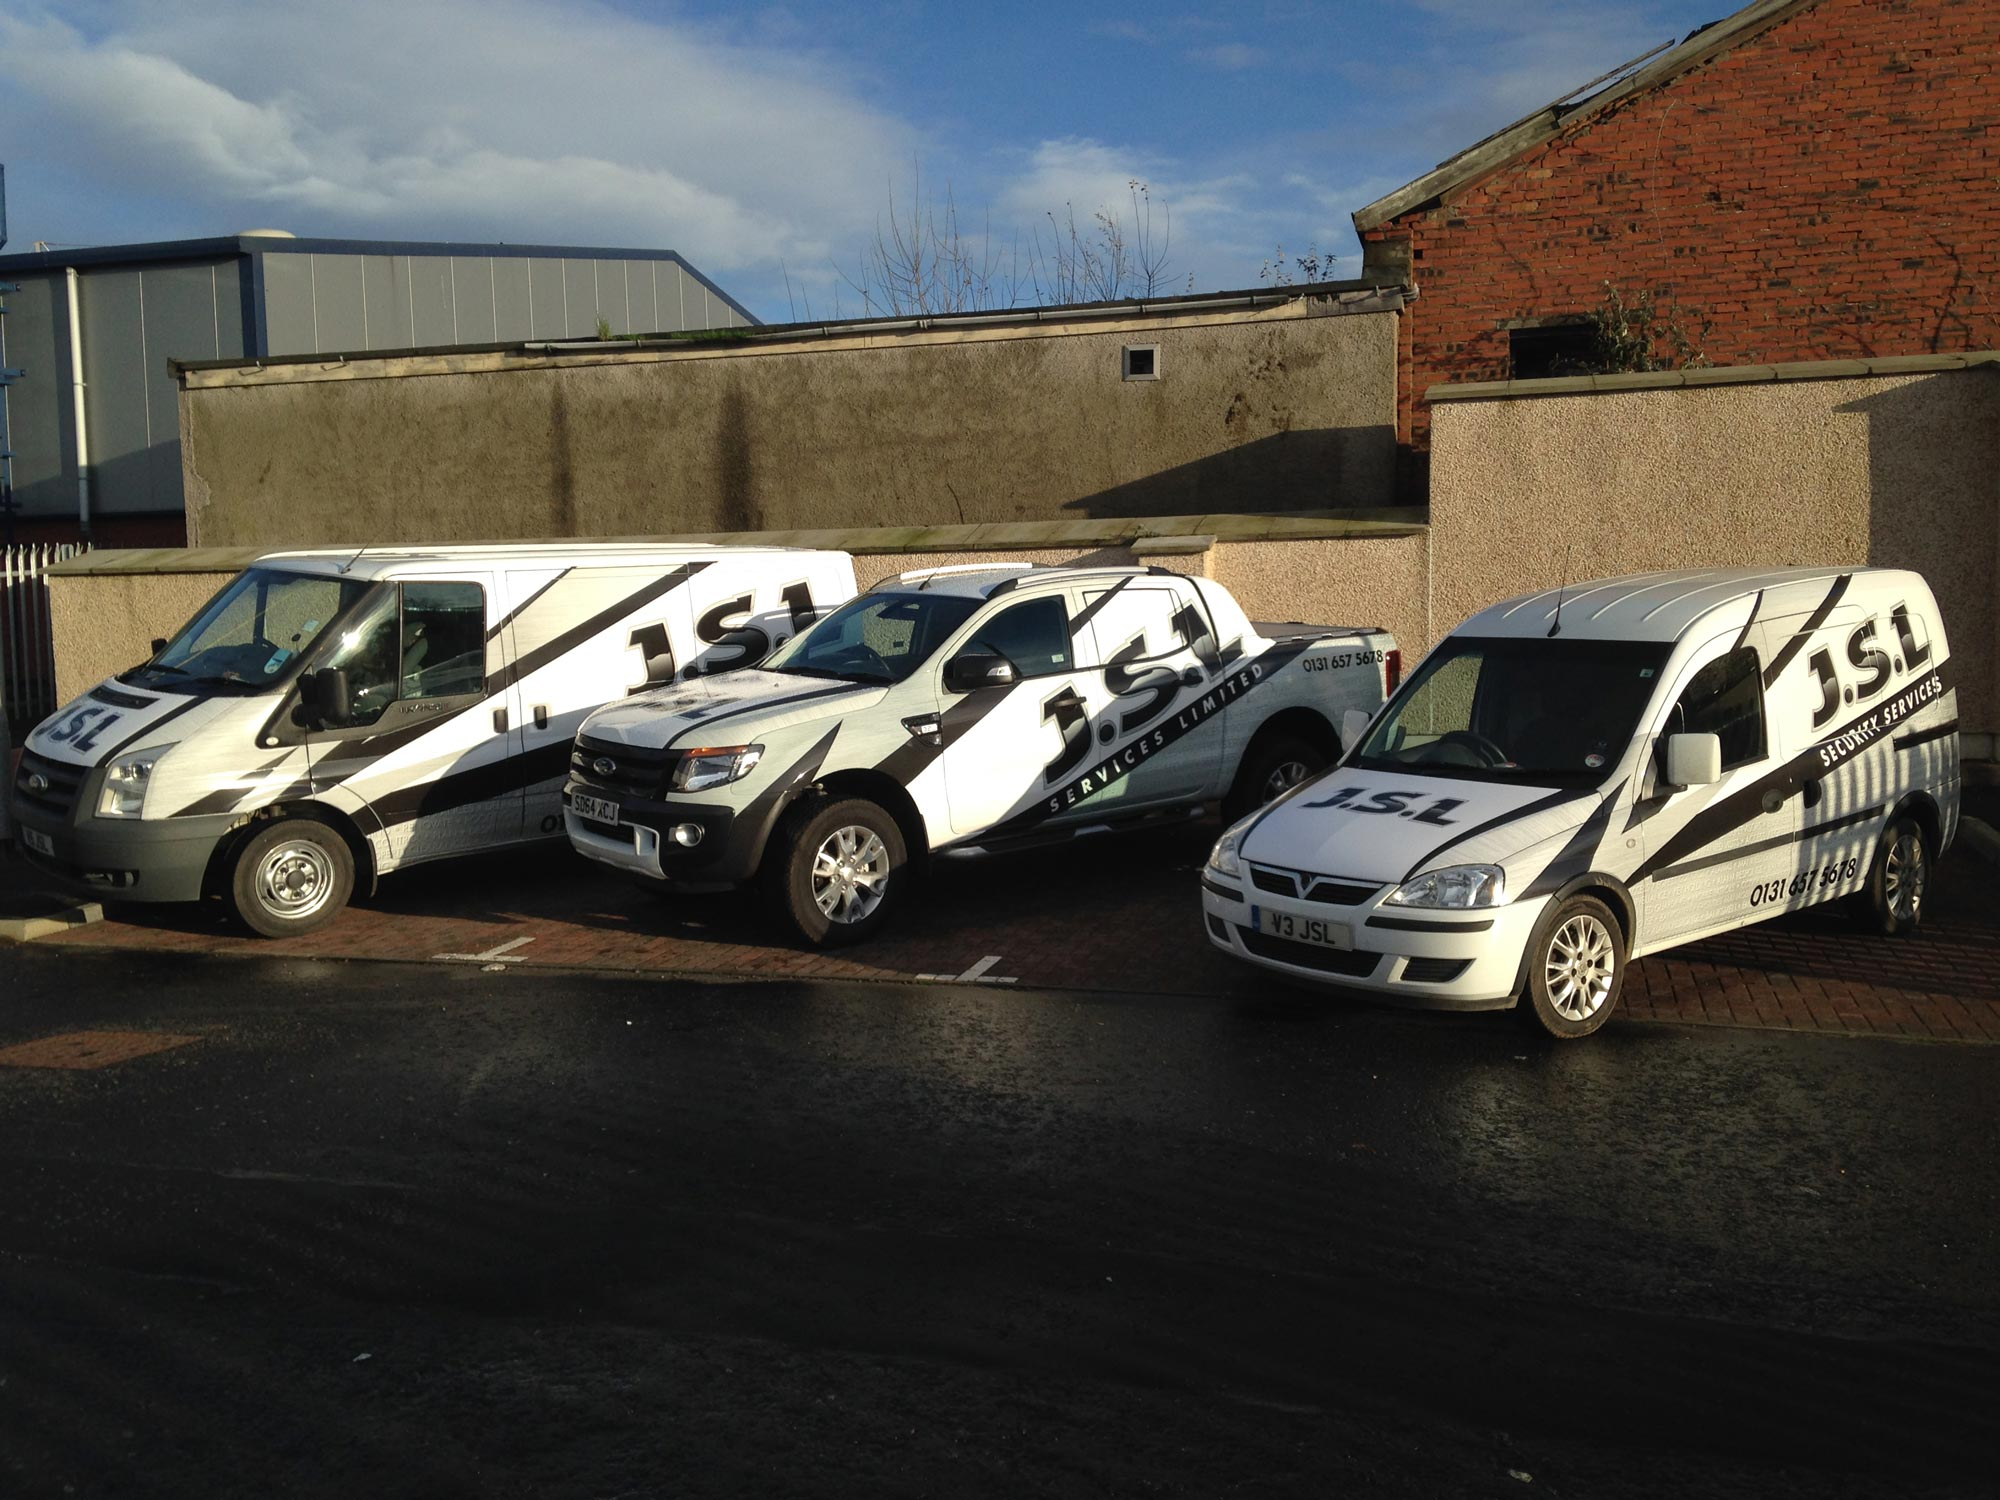 JSL Fleet of vans